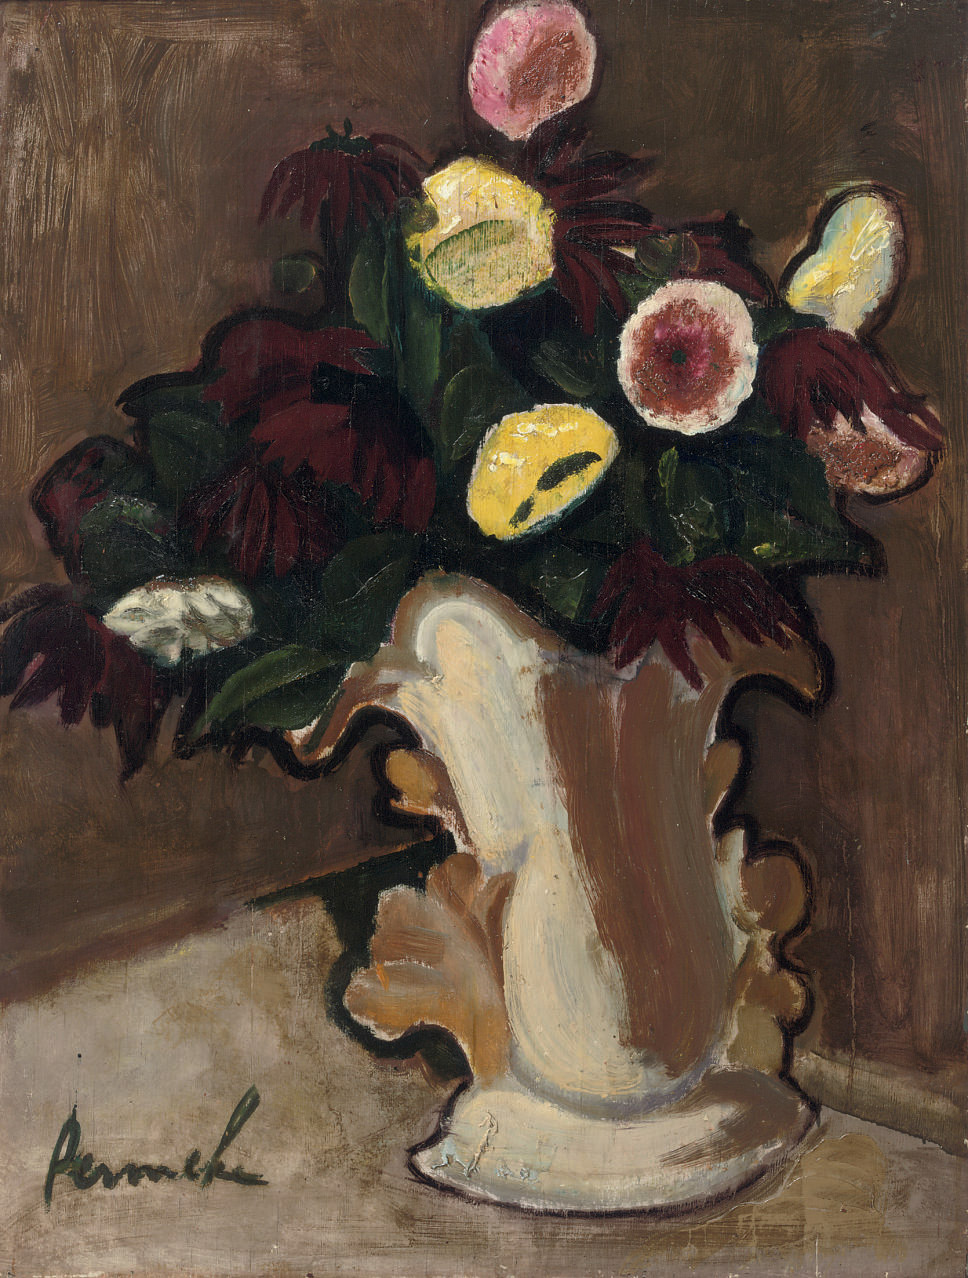 Fleurs: a still life with flowers